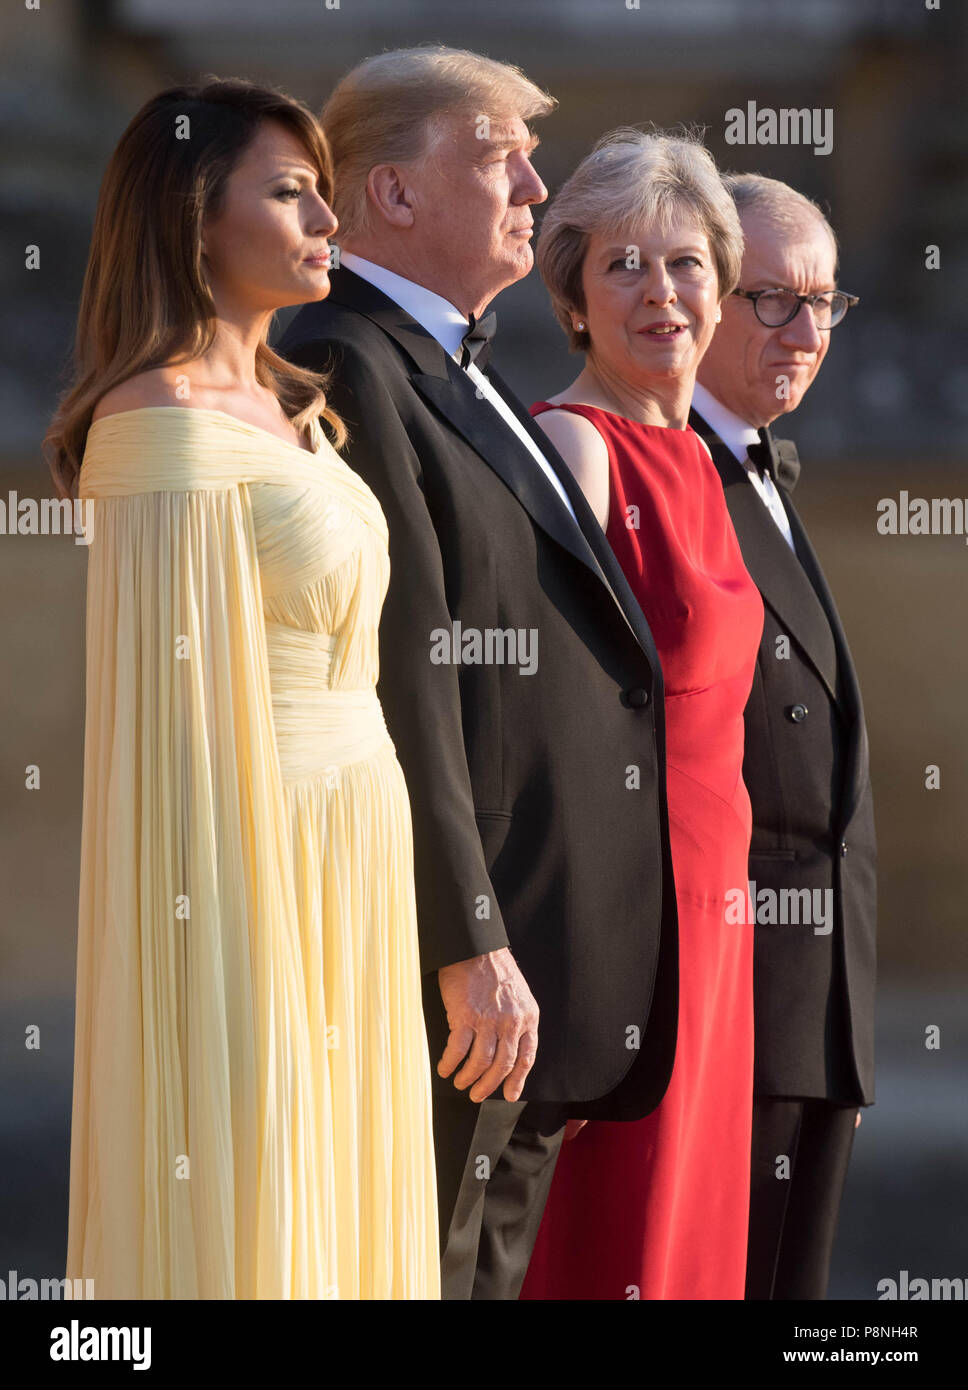 Us President Donald Trump And His Wife Melania Are Welcomed By Prime Minister Theresa May And Her Husband Philip May At Blenheim Palace Oxfordshire Where Mrs May Will Host A Dinner As